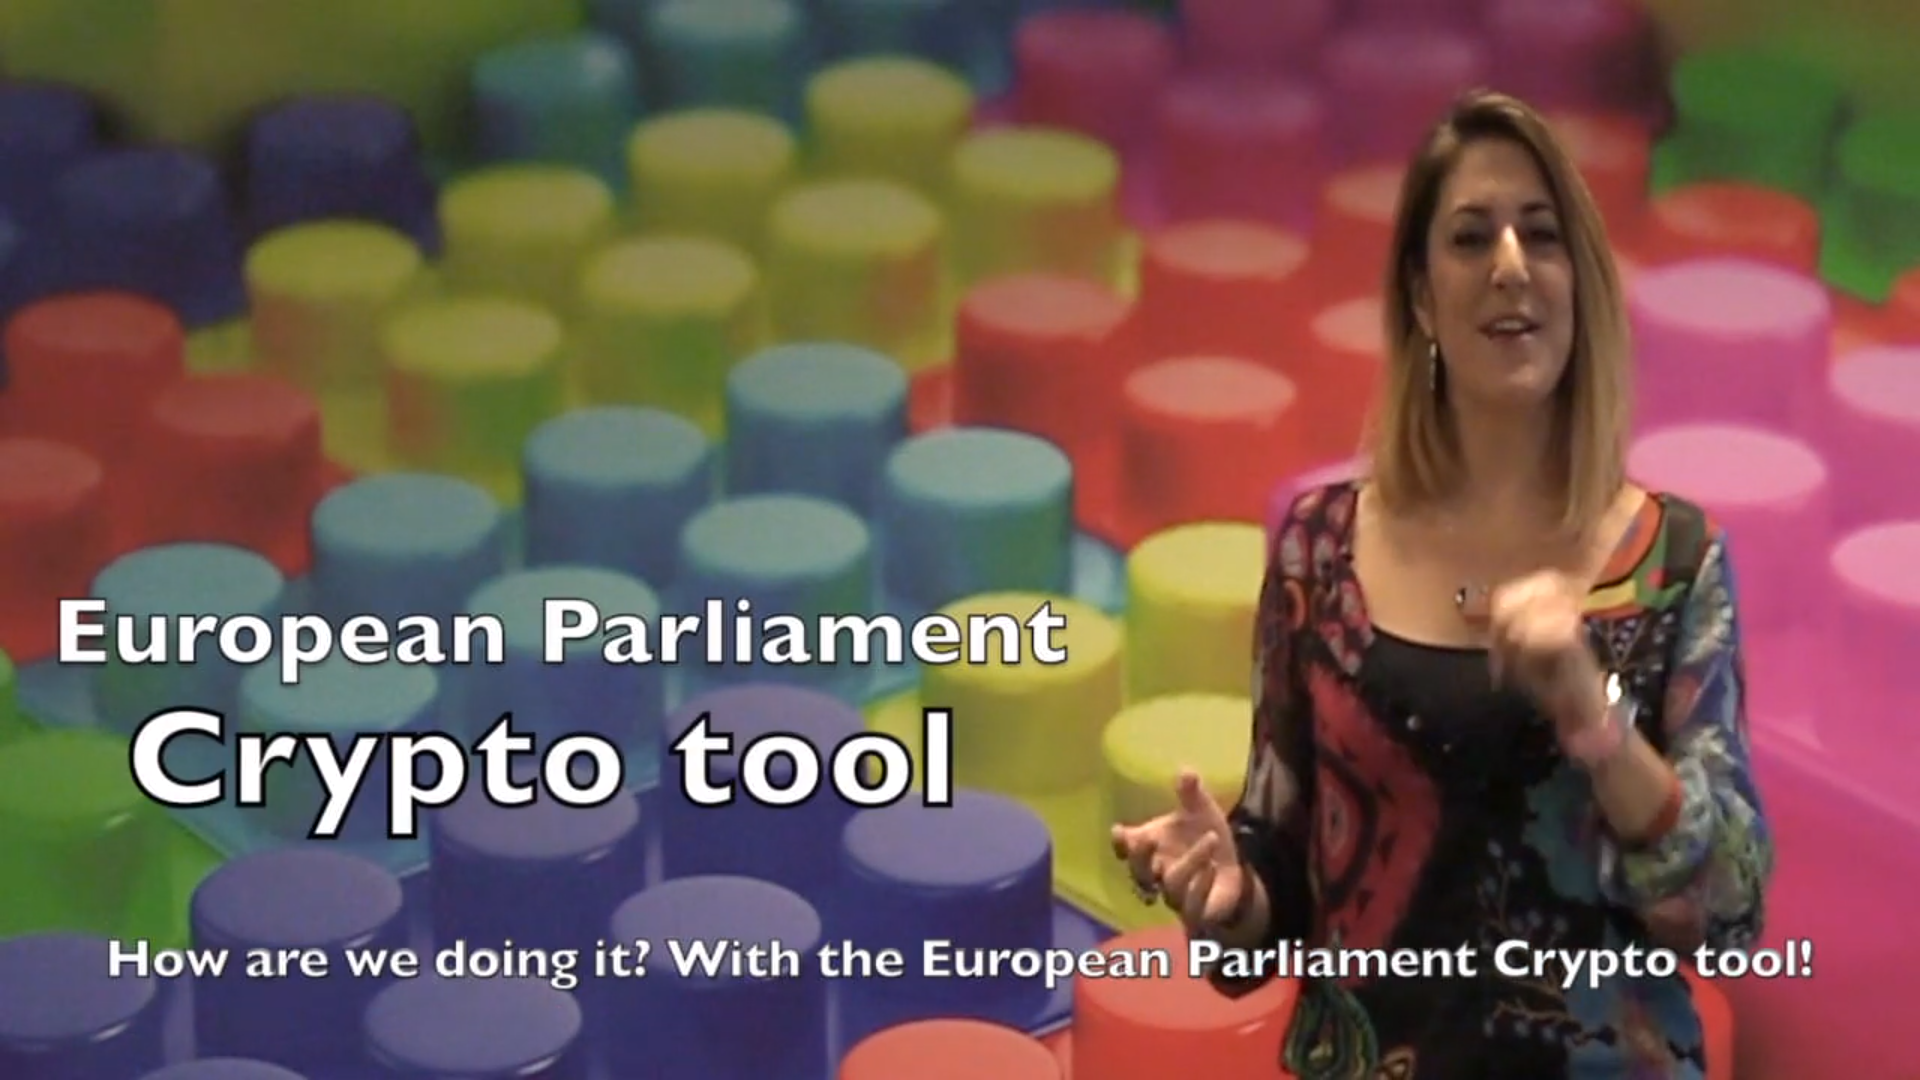 Crypto Tool by the European Parliament for securing exchange of data during the EP elections